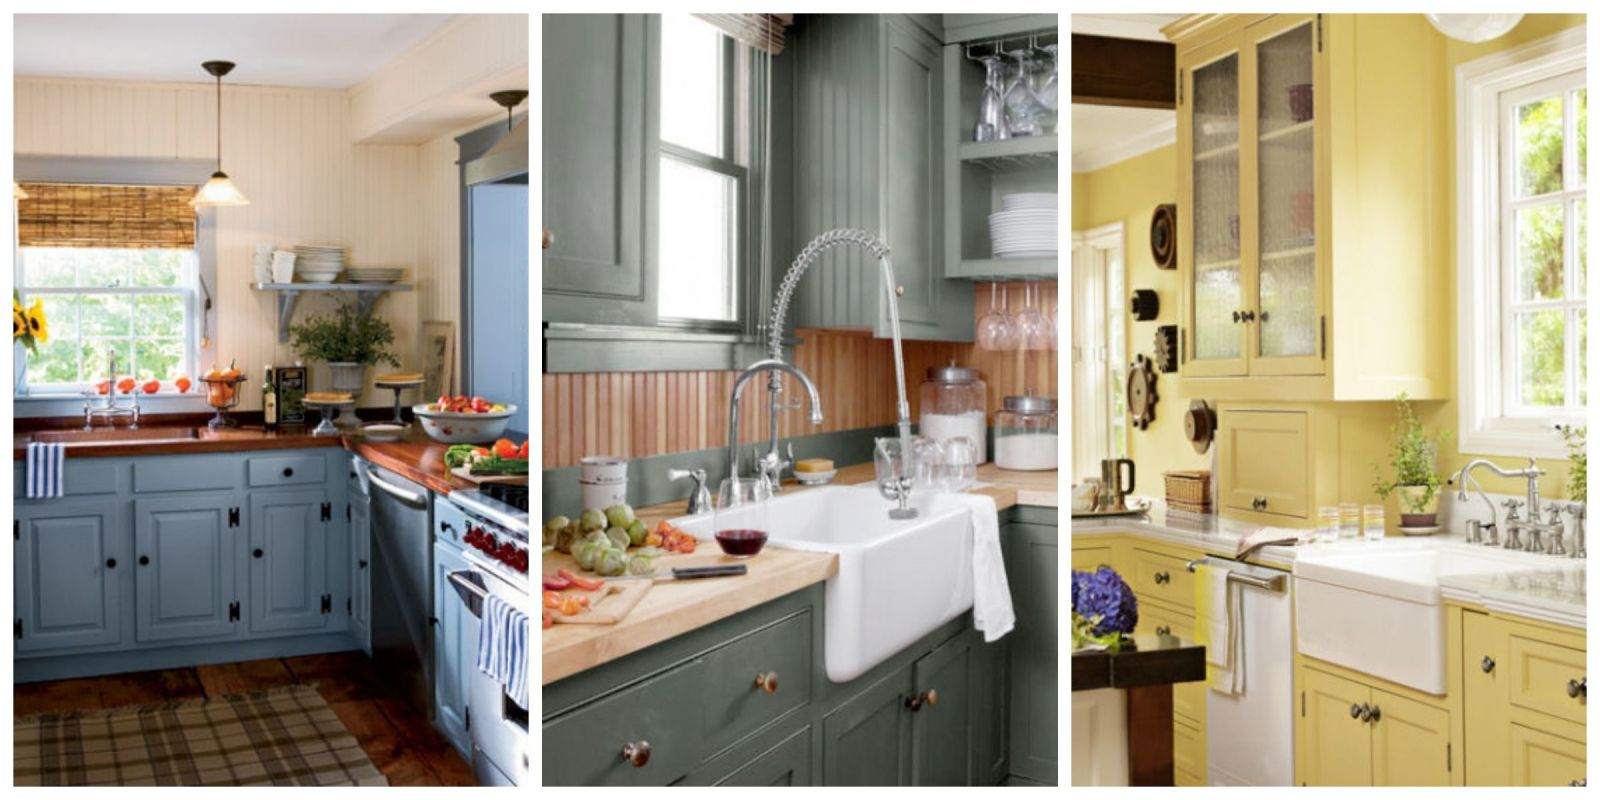 For Kitchen Colours 15 Best Kitchen Color Ideas Paint And Color Schemes For Kitchens